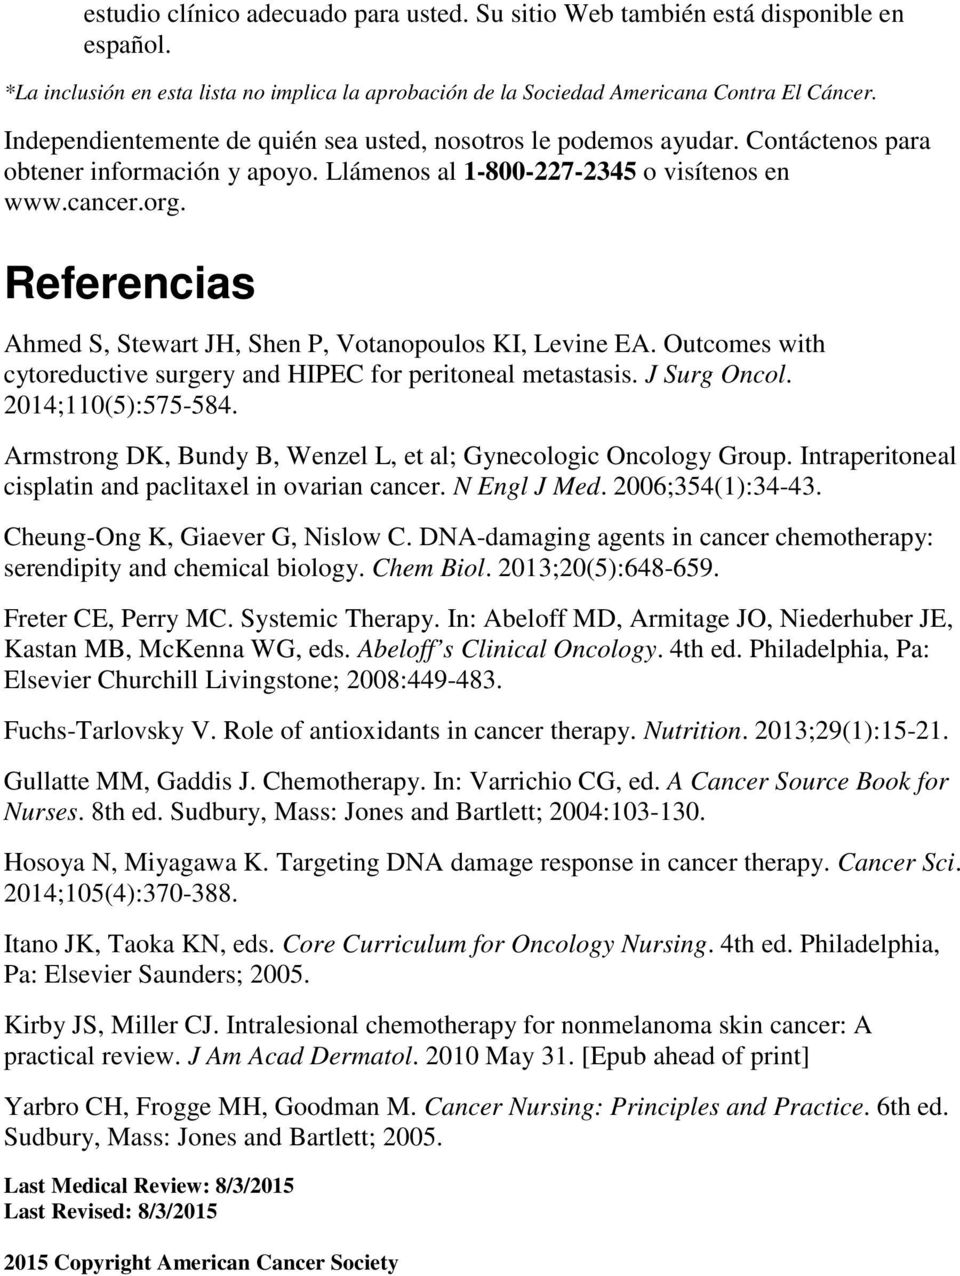 Referencias Ahmed S, Stewart JH, Shen P, Votanopoulos KI, Levine EA. Outcomes with cytoreductive surgery and HIPEC for peritoneal metastasis. J Surg Oncol. 2014;110(5):575-584.